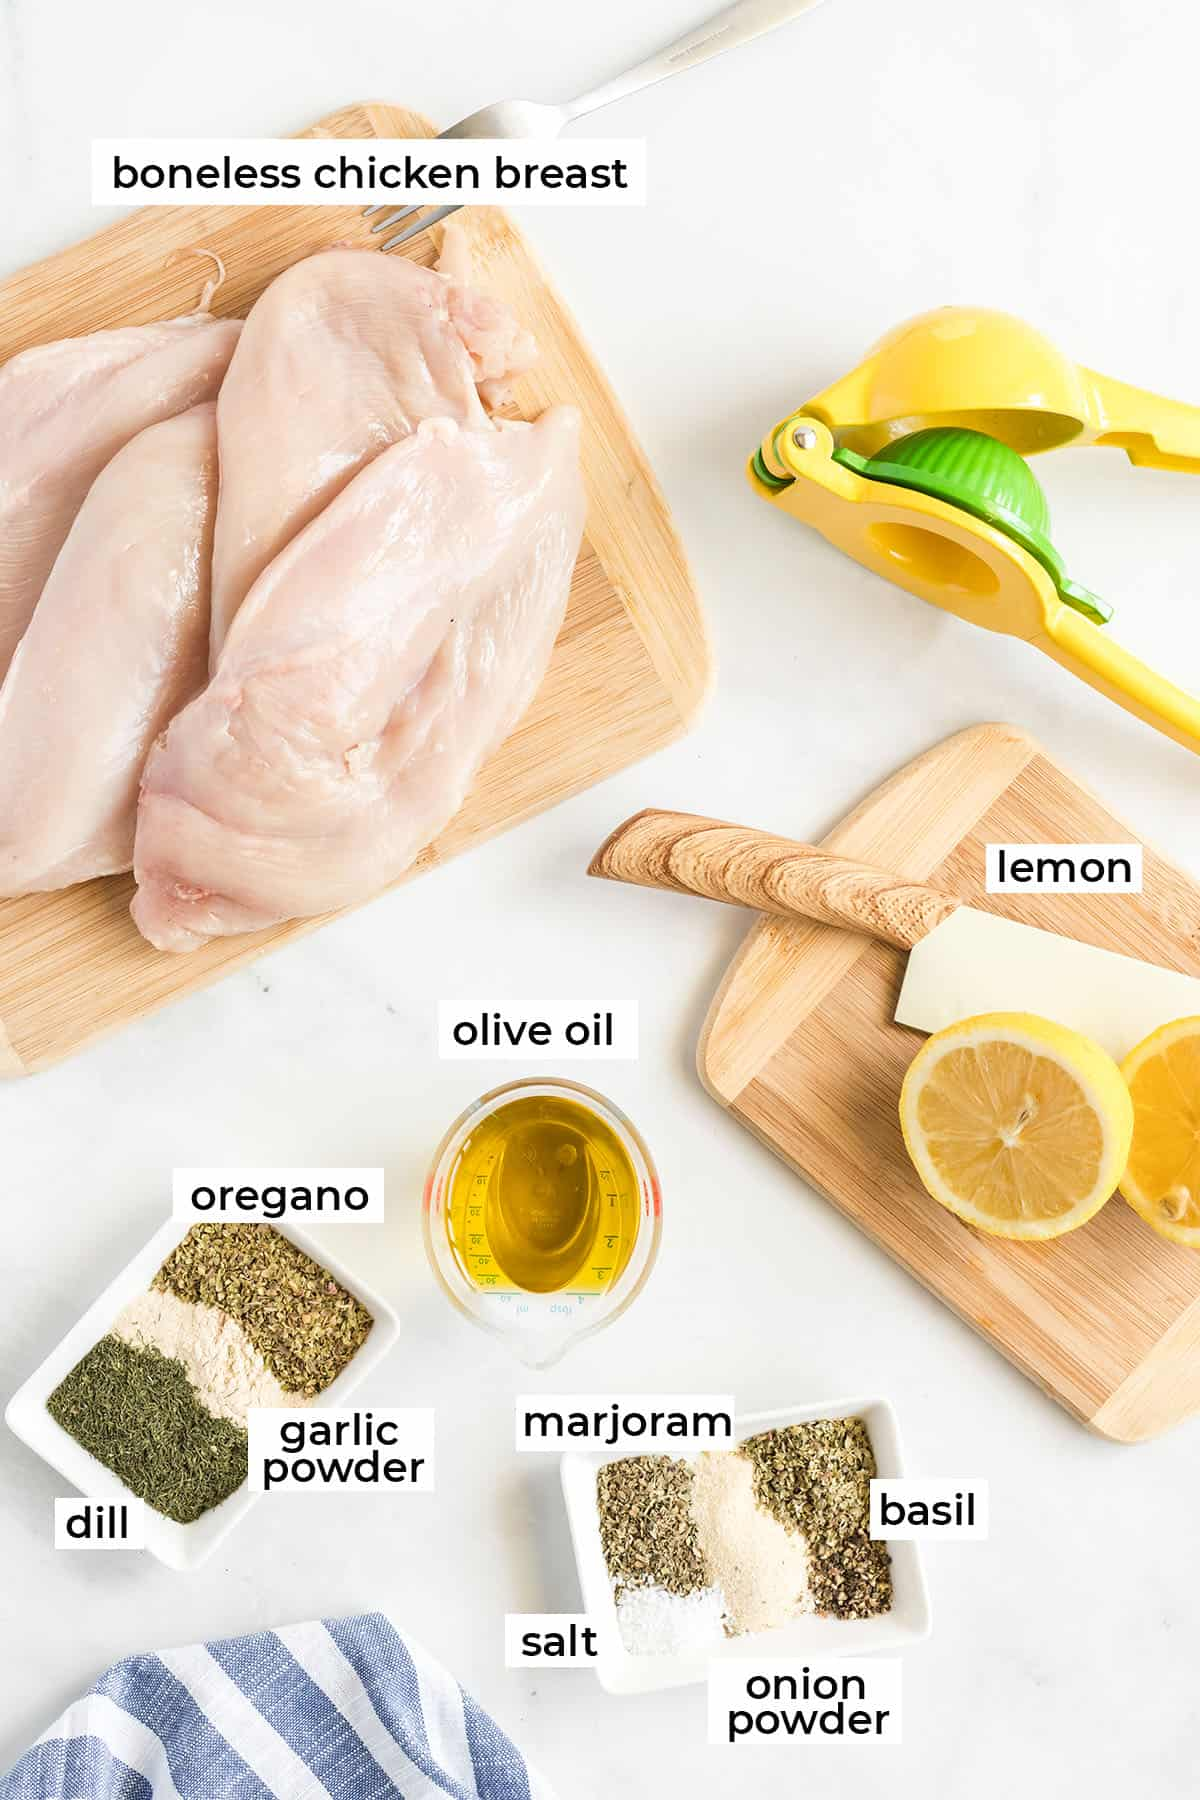 The ingredients to make Greek chicken with text overlay.